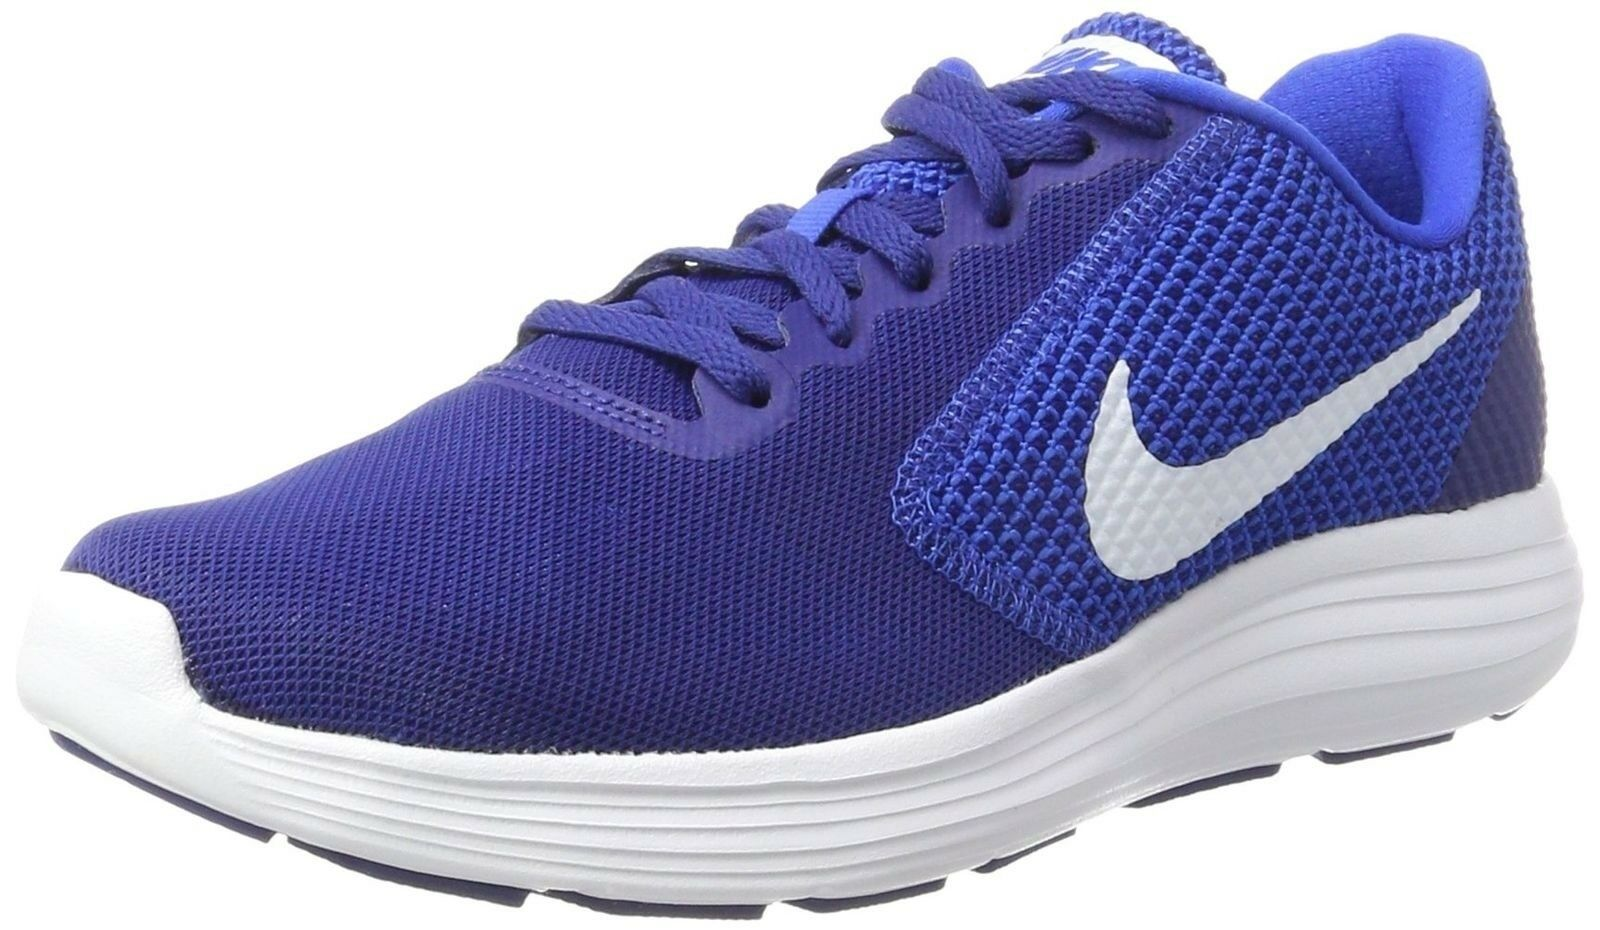 NIKE Men's Revolution 3 Running shoes, Deep Royal bluee White Hyper Cobalt, 10....